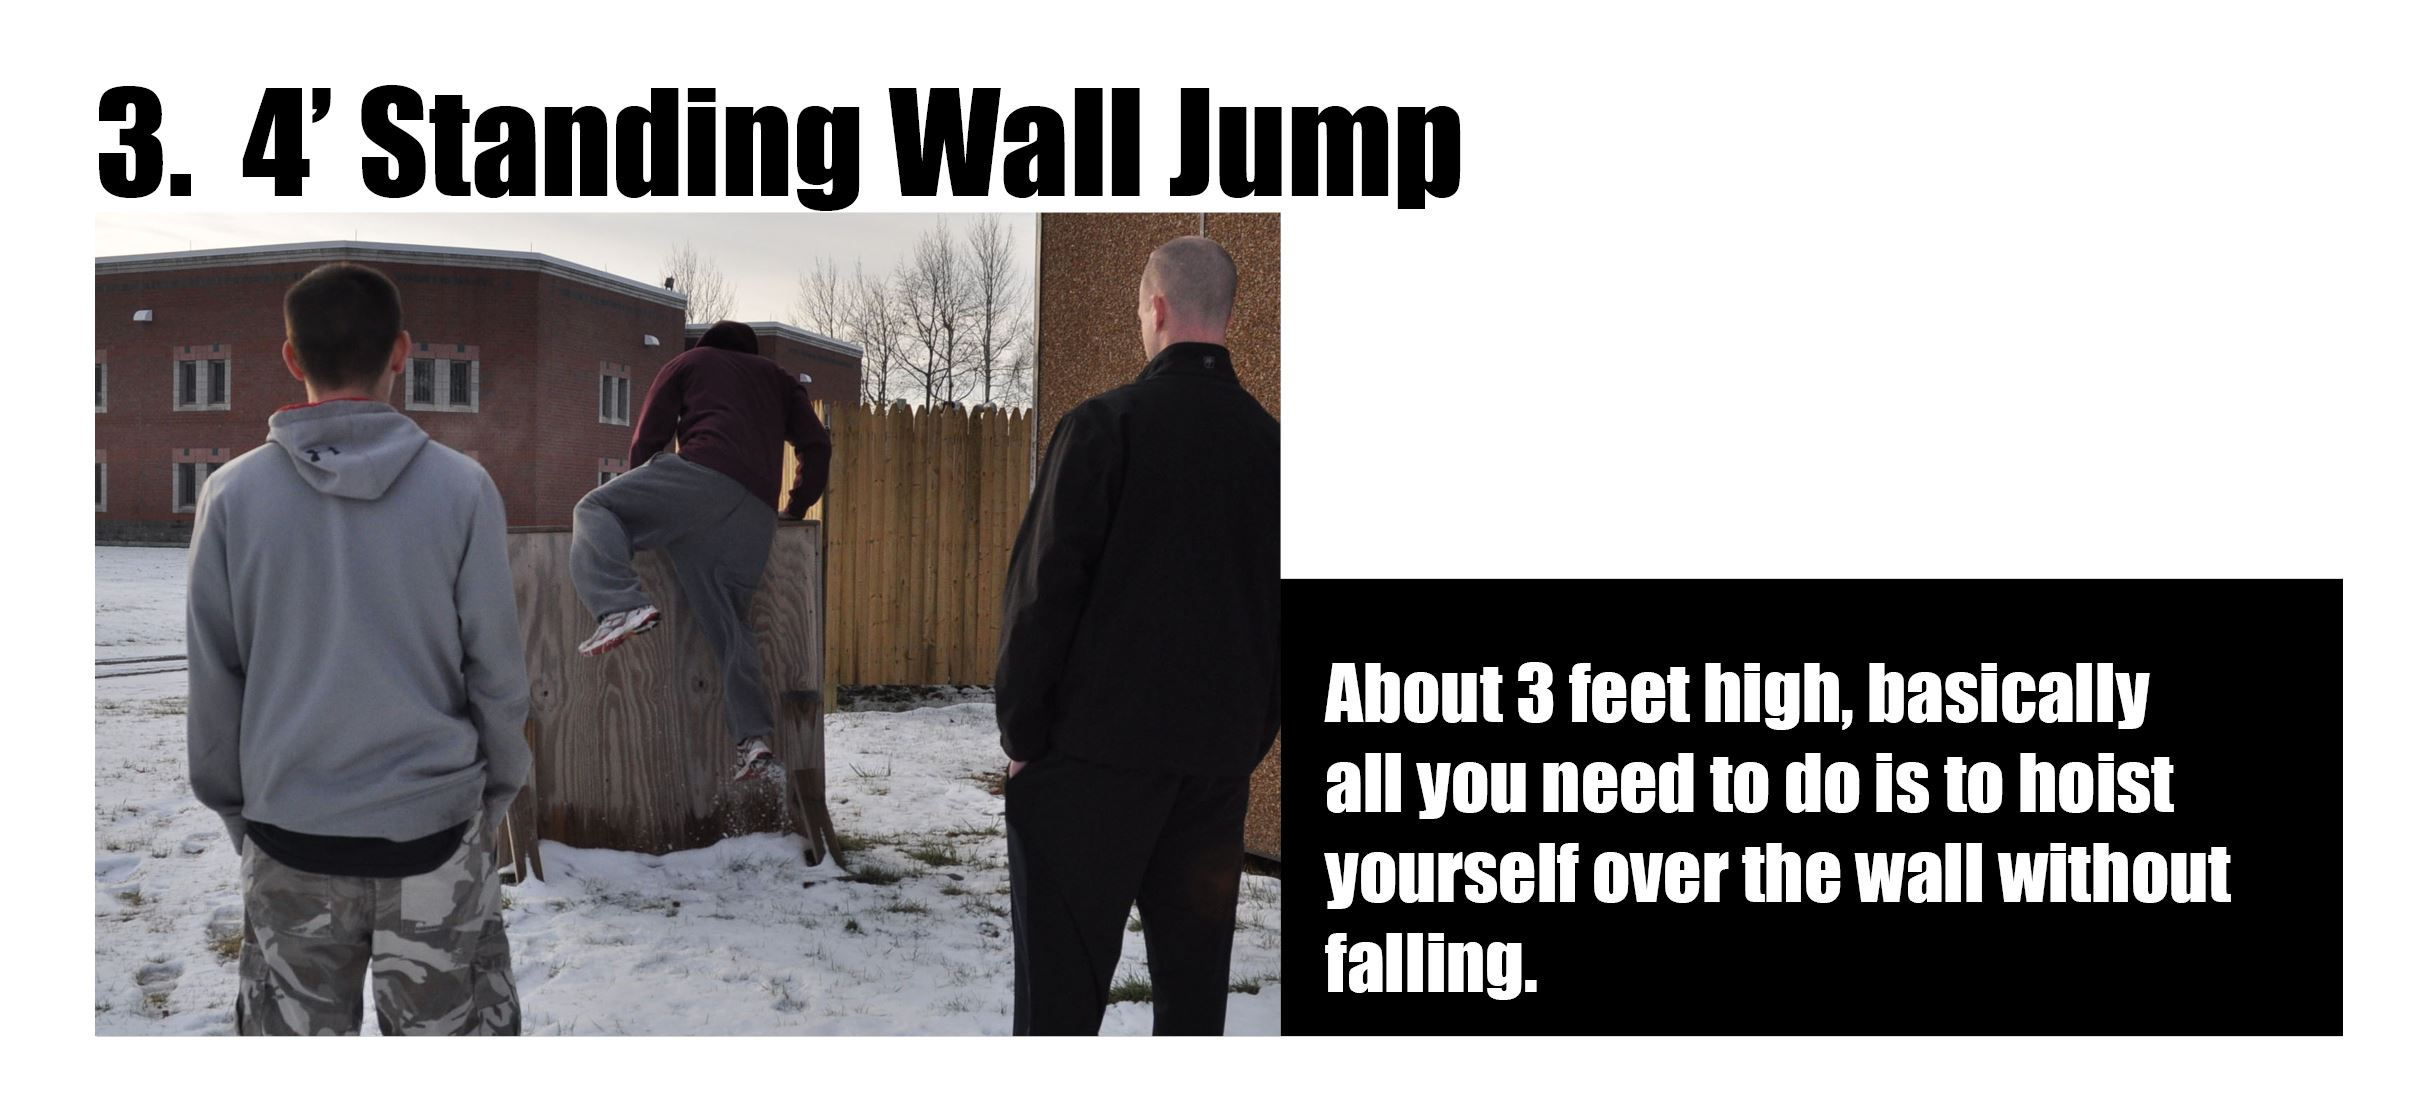 standing wall jump graphic